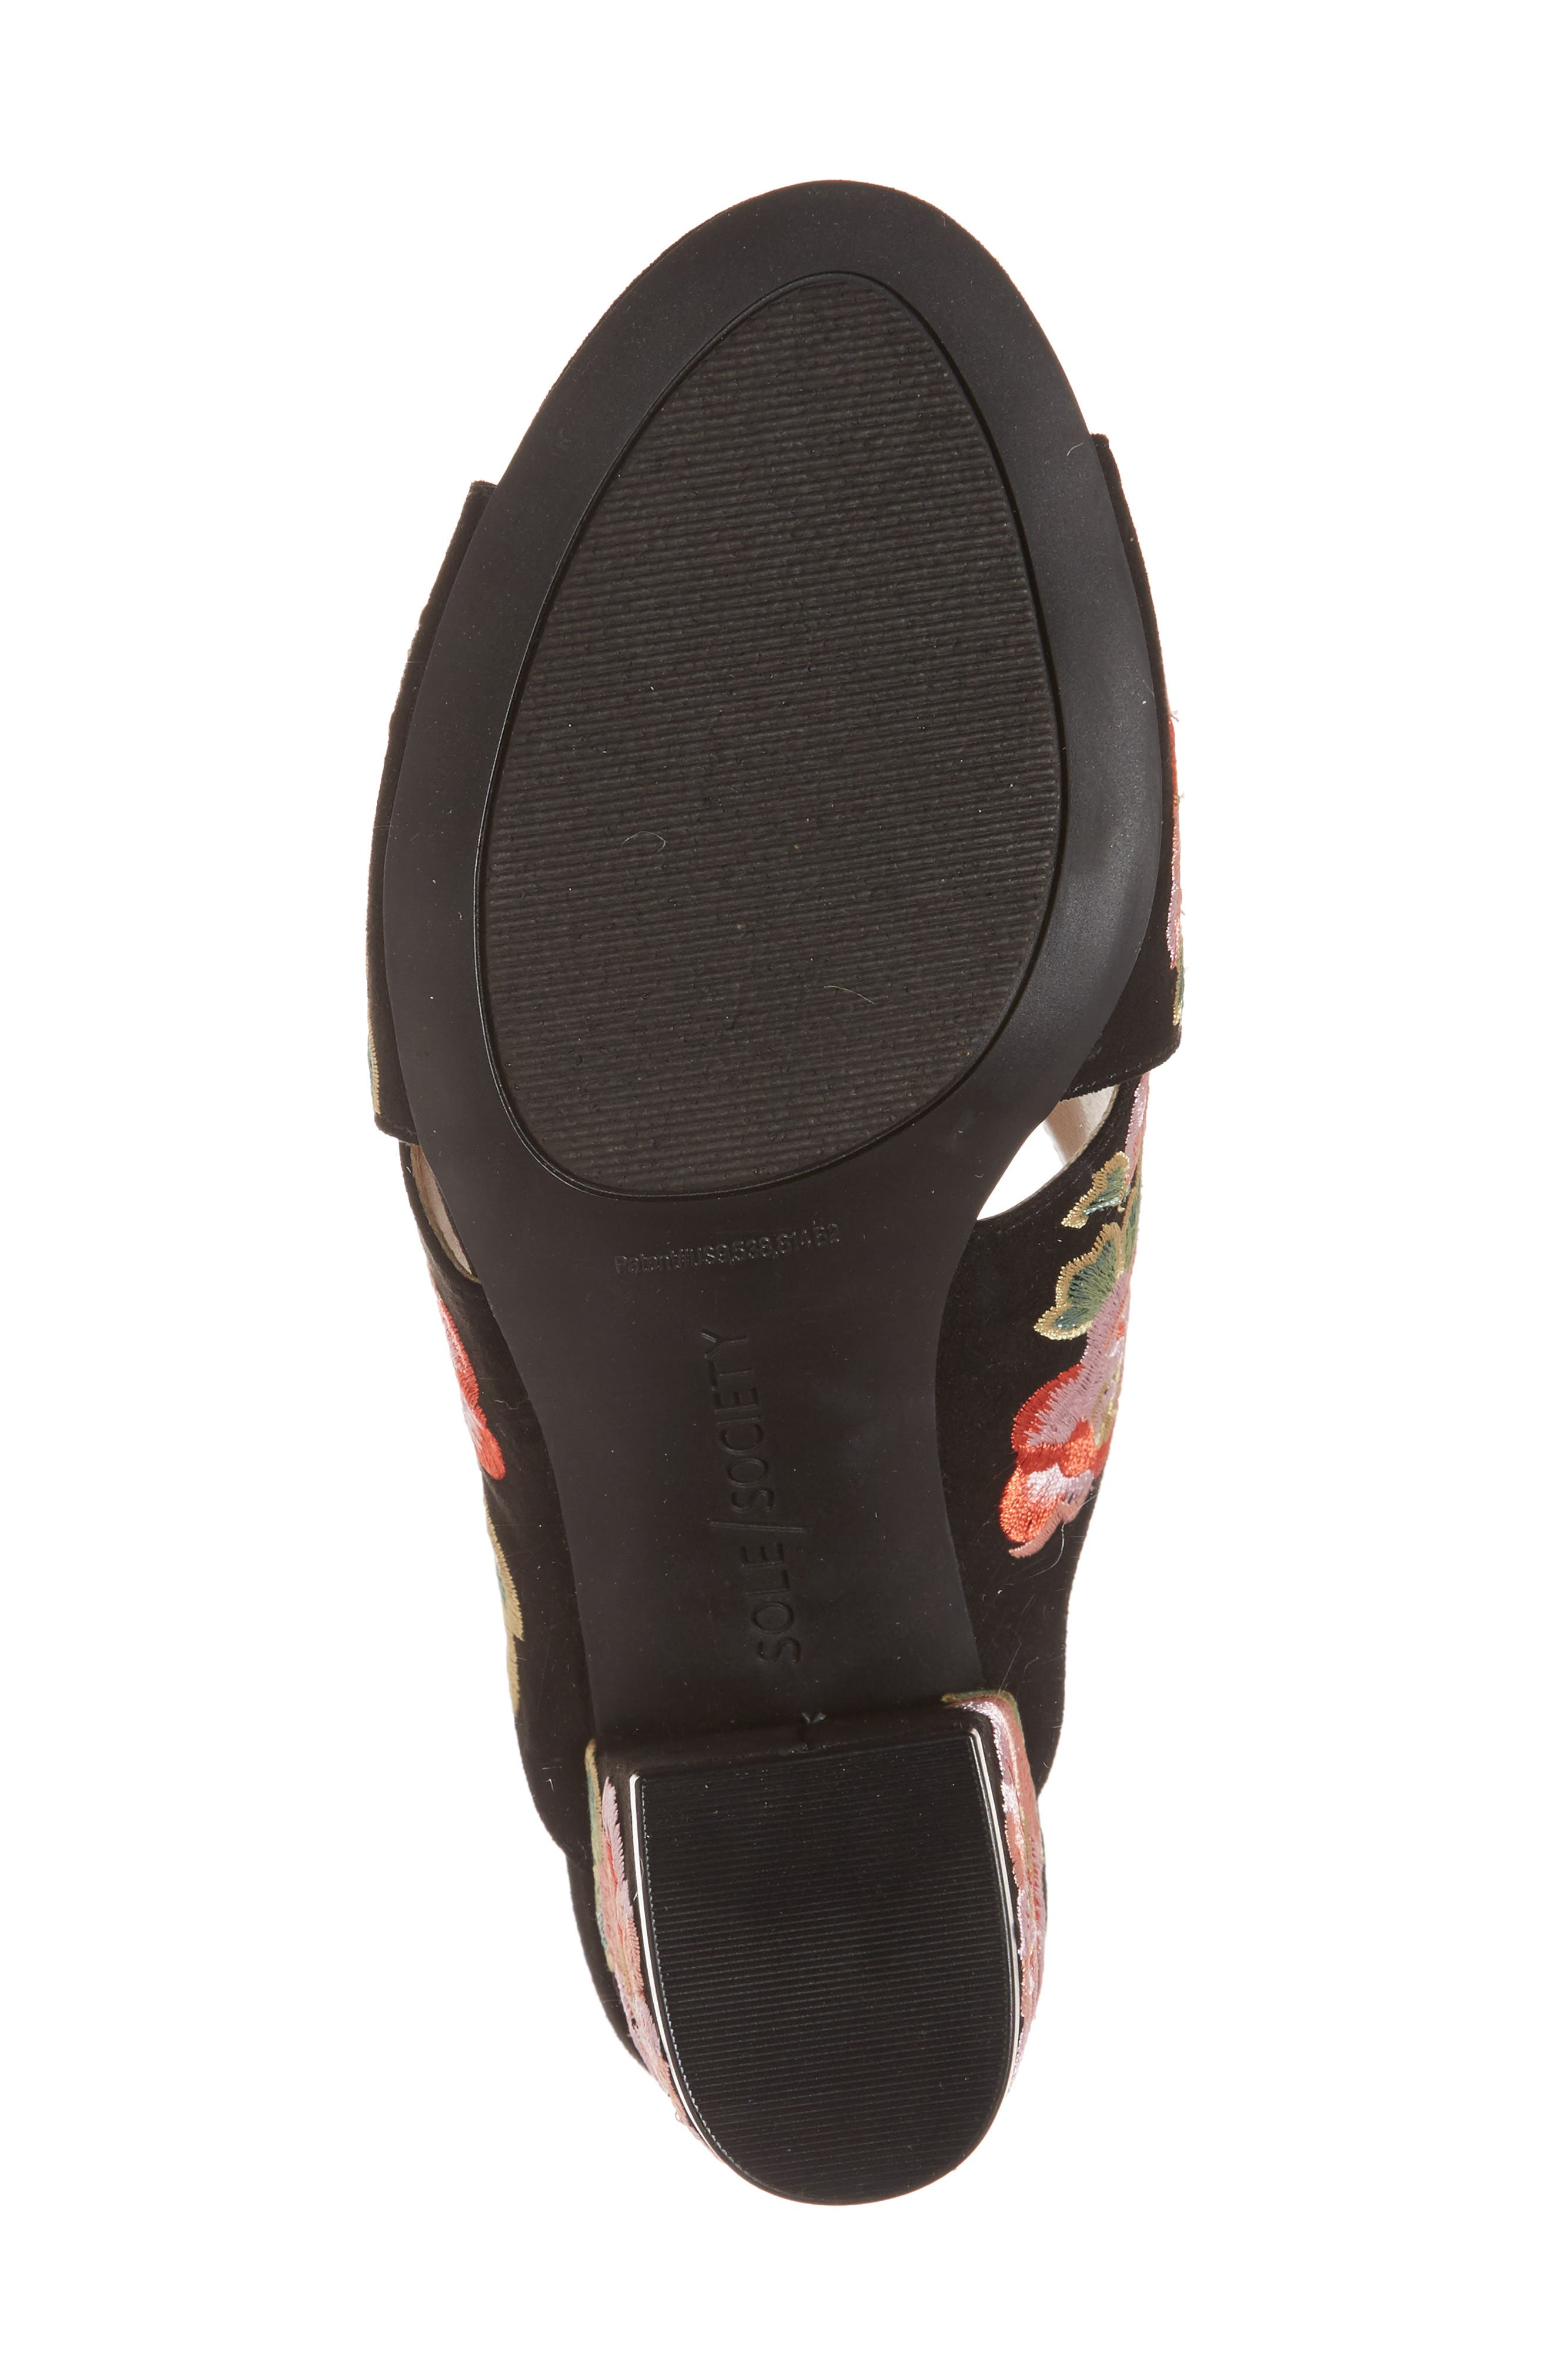 Luella Flower Embroidered Slide,                             Alternate thumbnail 6, color,                             Black/ Coral Multi Embroidery